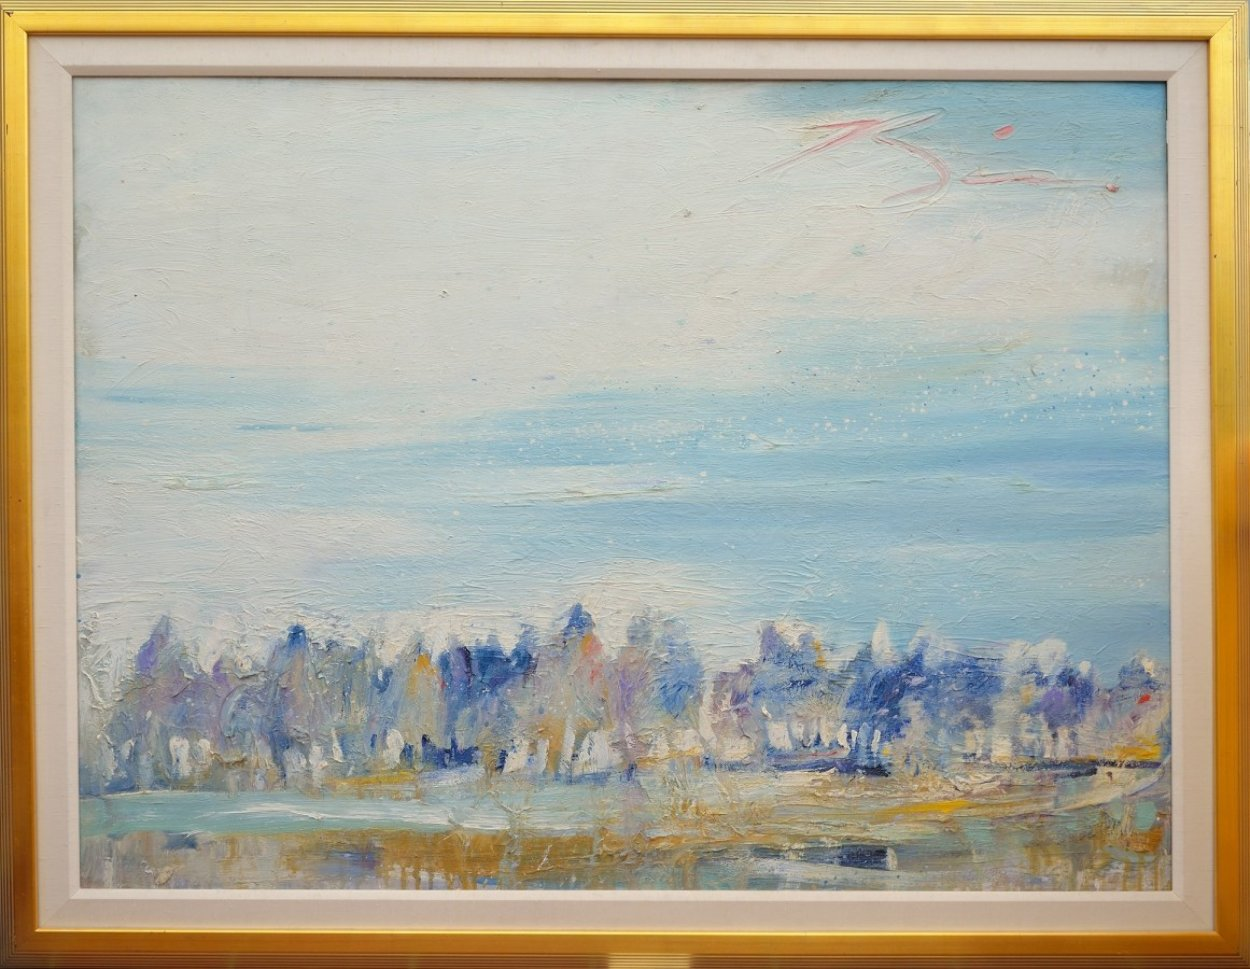 Riders on the Bank 44x56 Original Painting by Earl Biss